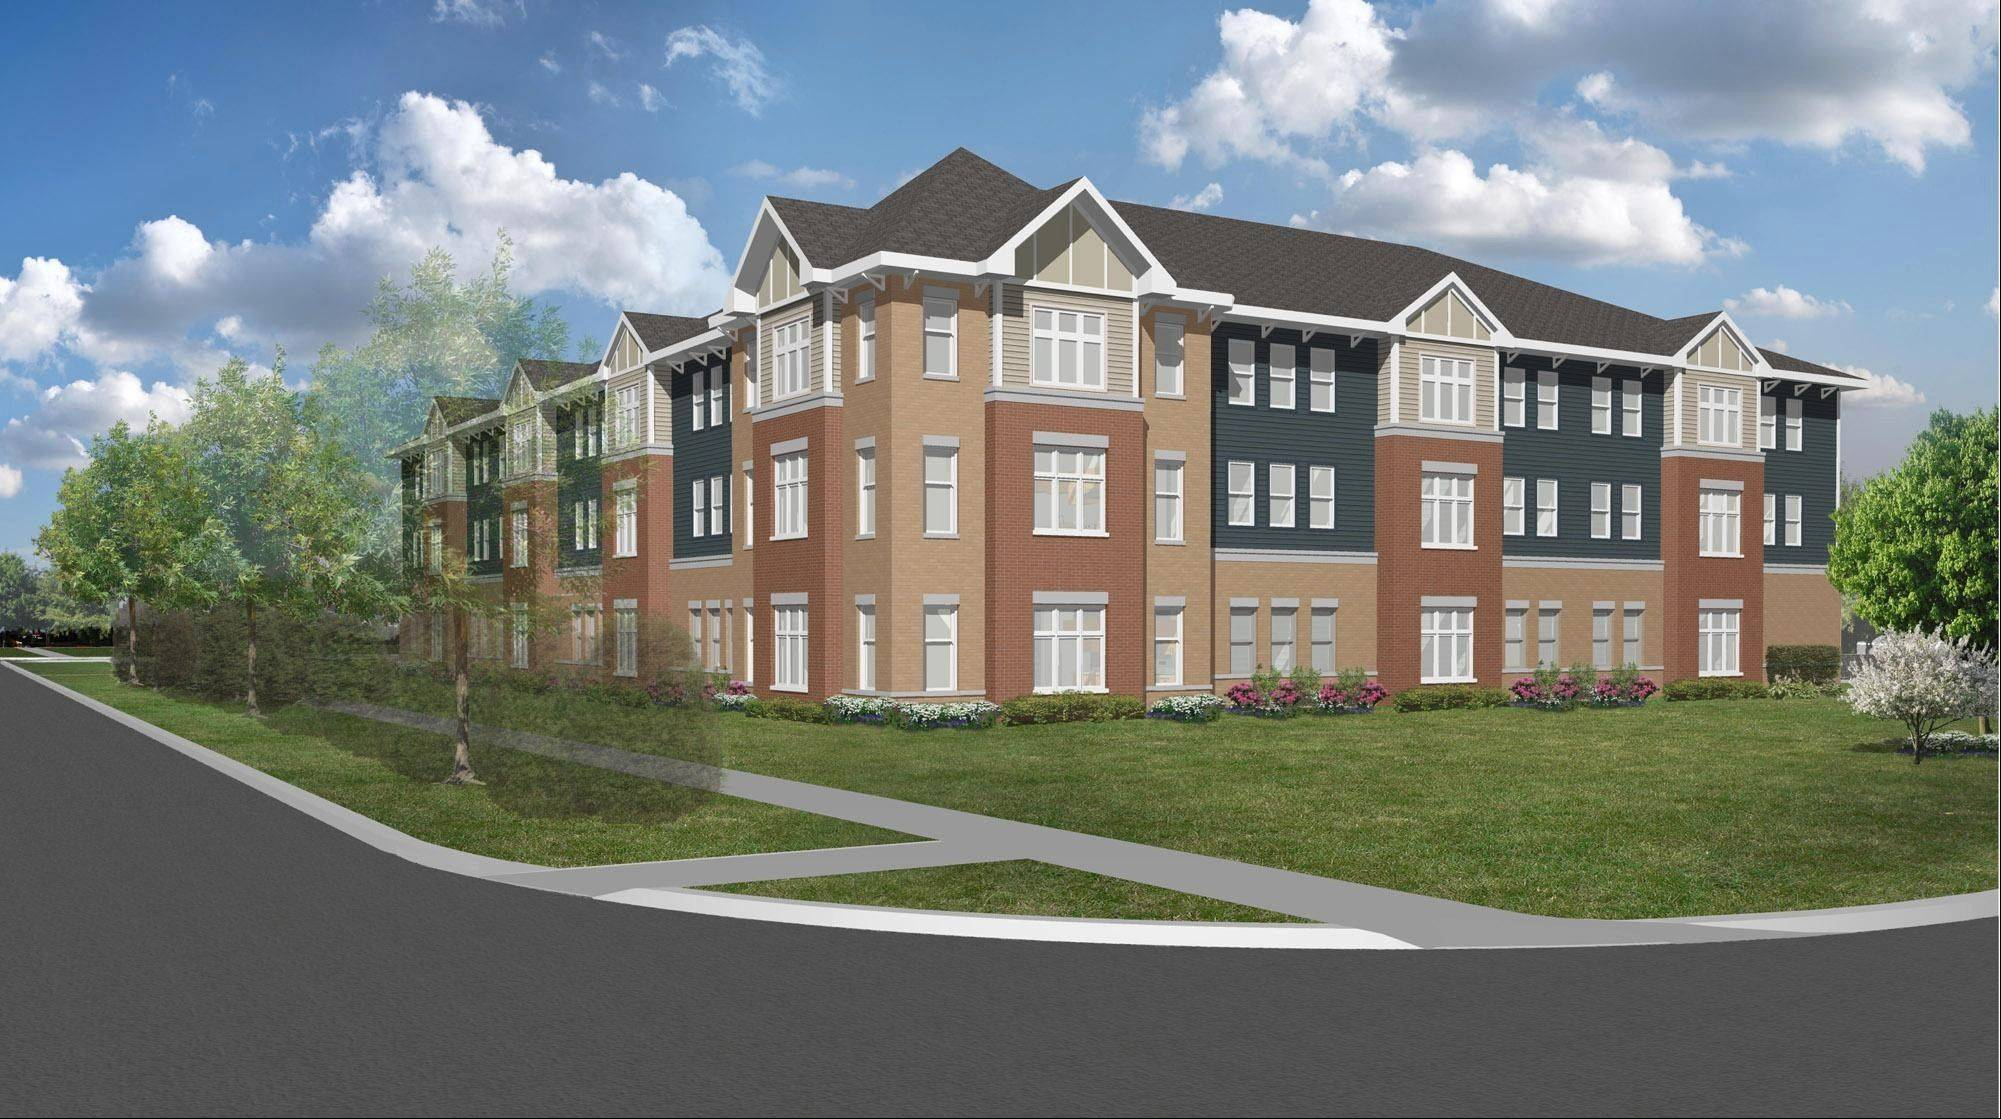 Catherine Alice Gardens is a permanent supportive housing facility being proposed in Palatine for people with disabilities. Critics have questioned some of the financial figures cited by its developers.